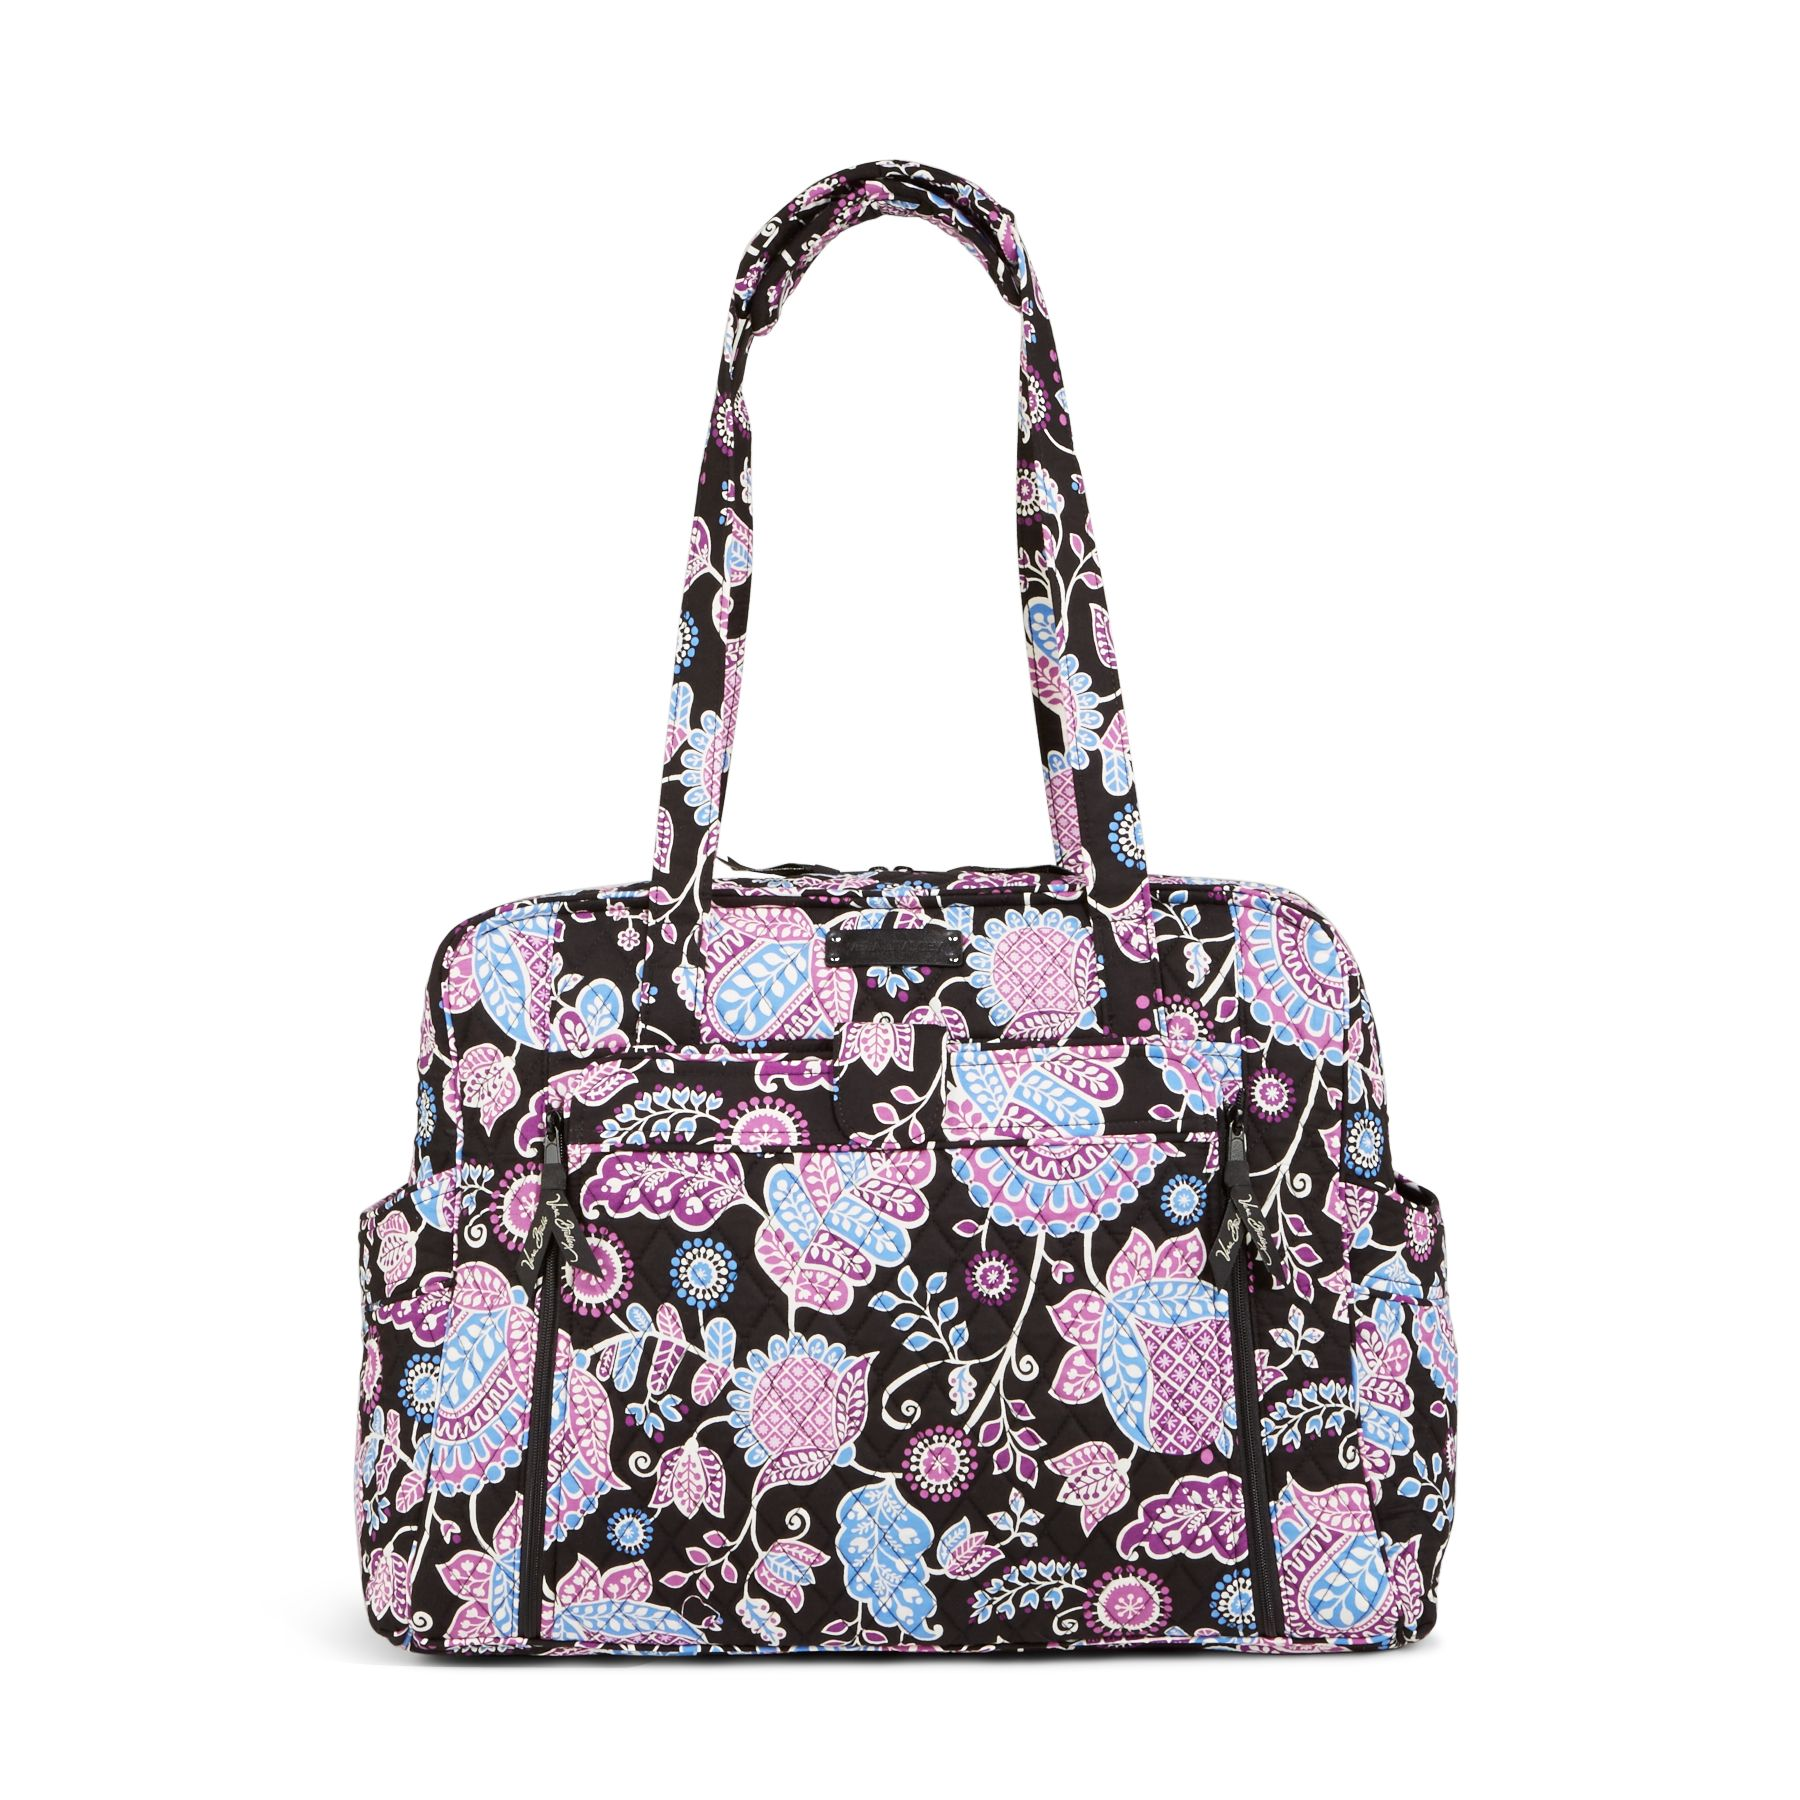 Vera Bradley Large Stroll Around Baby Shoulder Bag